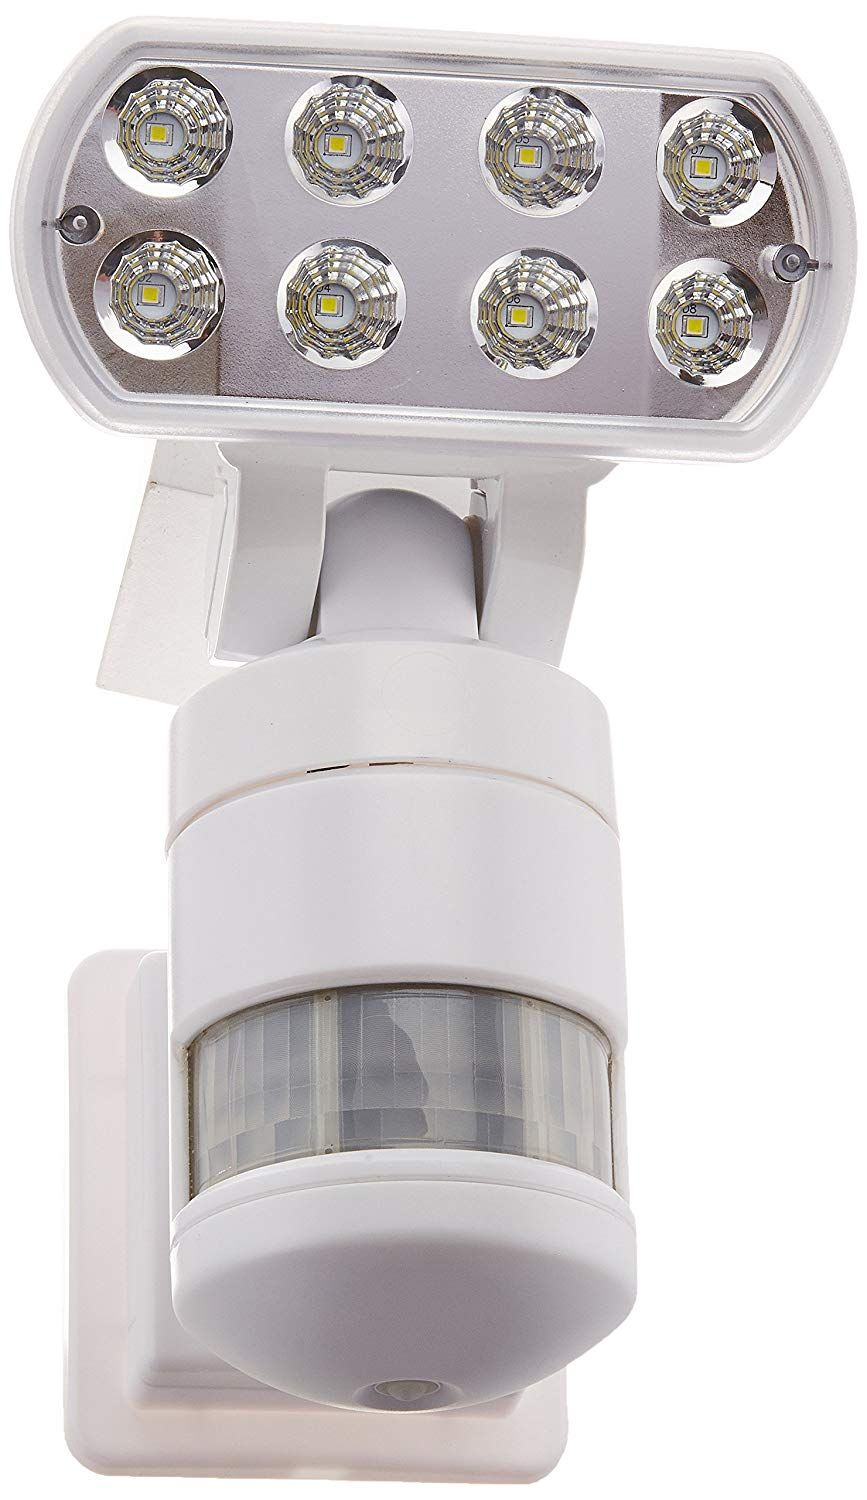 Creative Industries Nw500wh Night Watcher Security Light With Motorized Motion Tracking Led White C Outdoor Lighting Motion Activated Light Security Lights